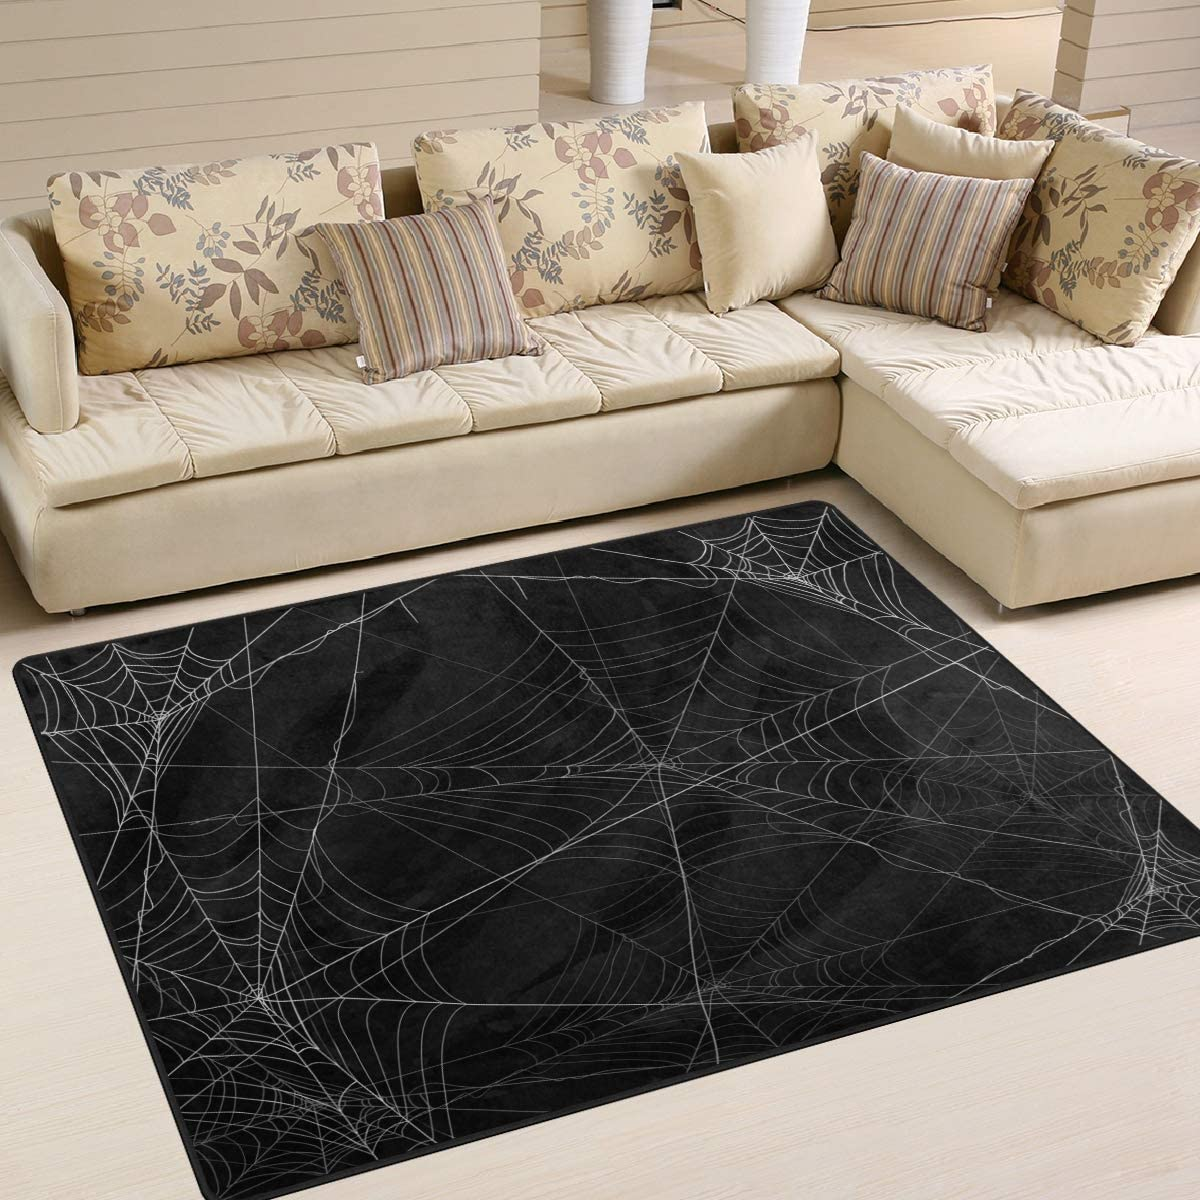 ALAZA Spider Webs Halloween Abstract Black Area Rug Rugs for Living Room Bedroom 7' x 5'